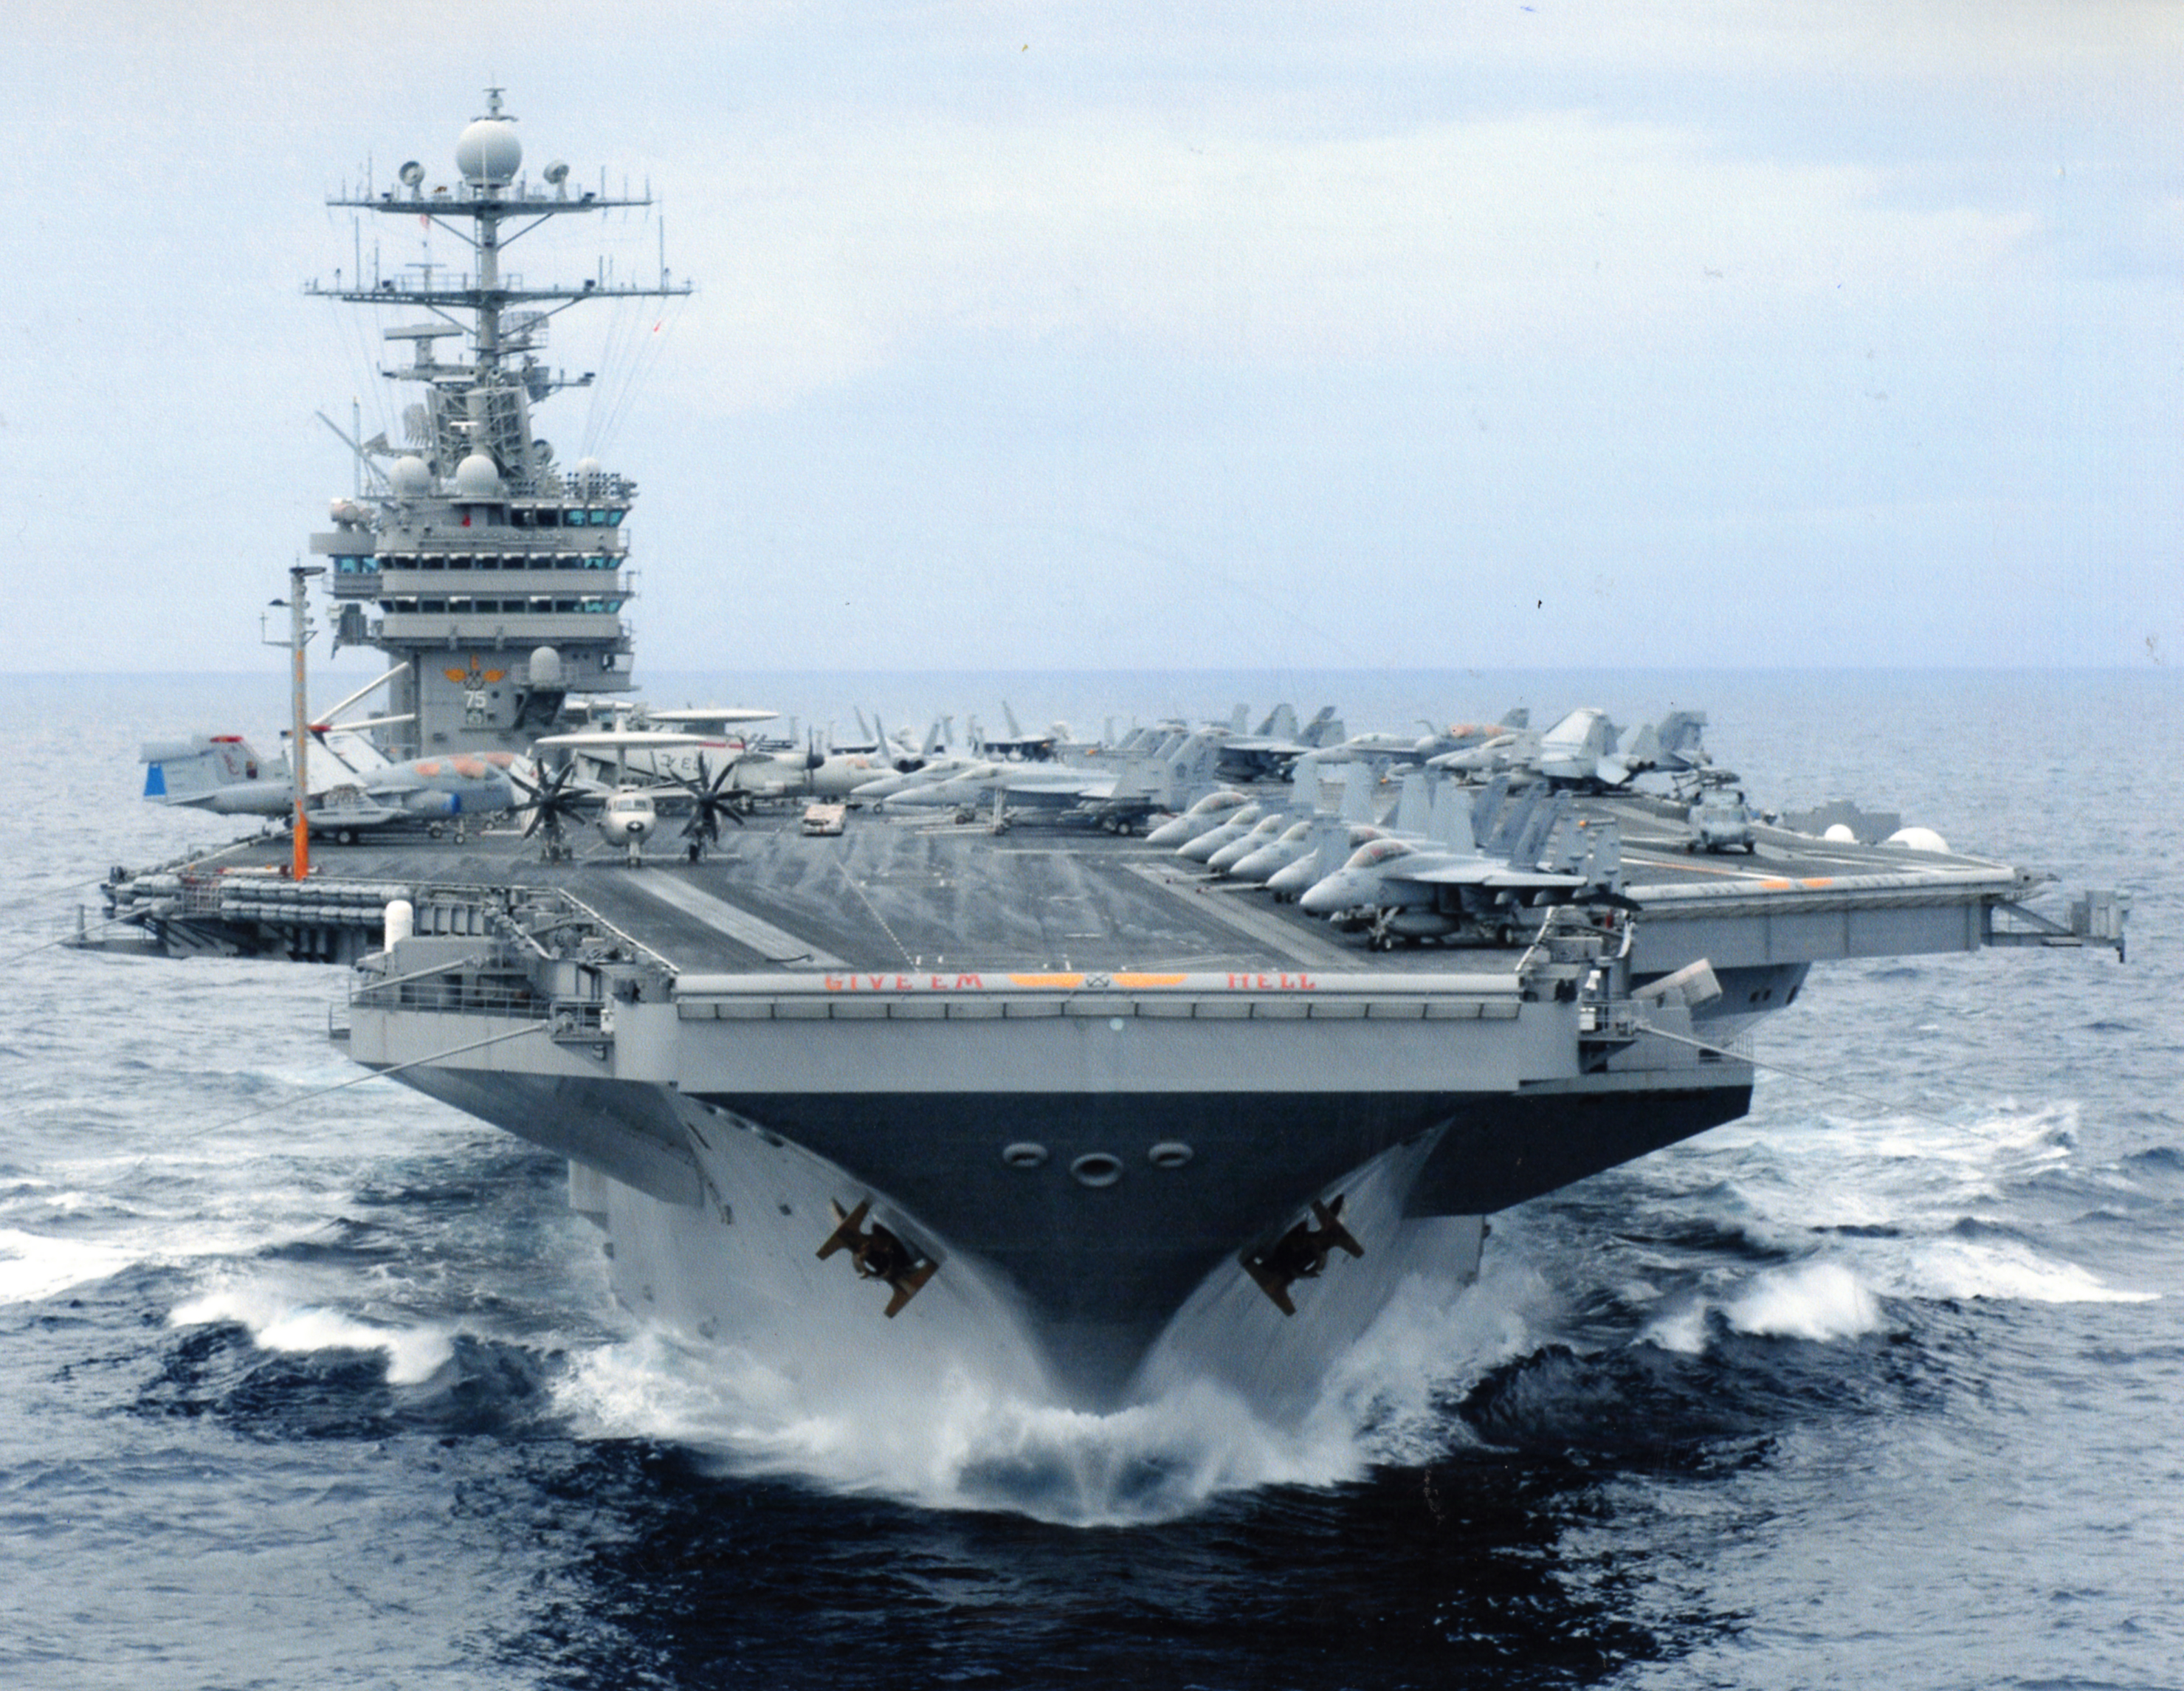 USS Harry S Truman (CVN-75)